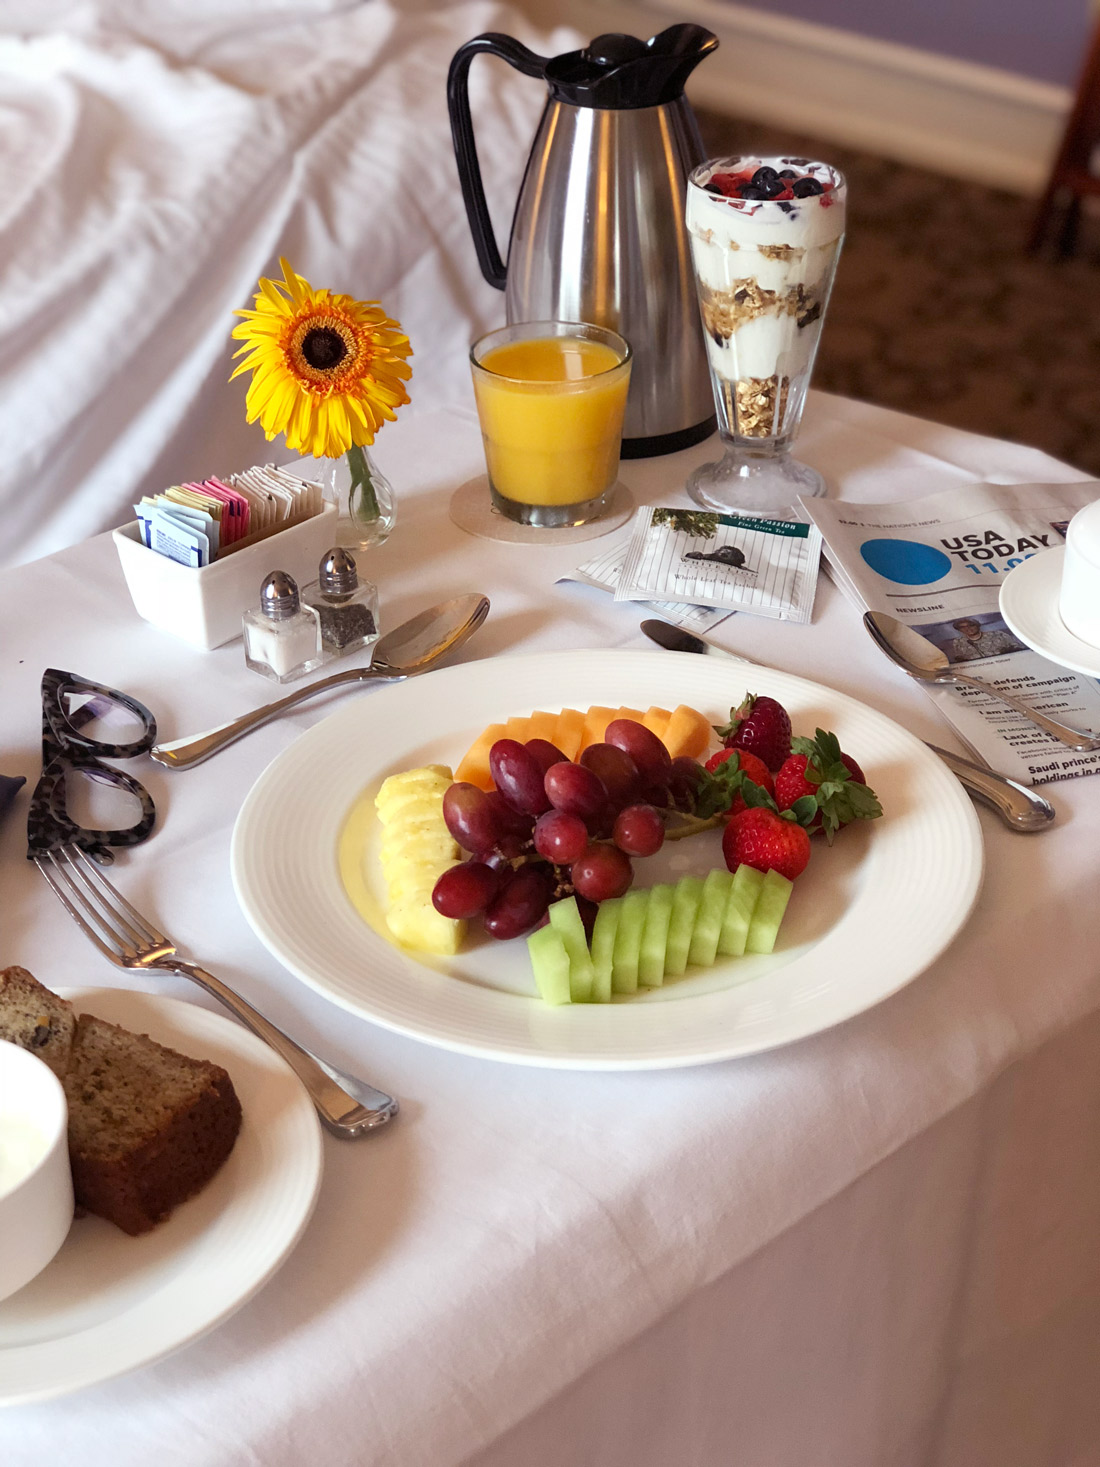 Bag-at-you---Breakfast-at-The-Peabody